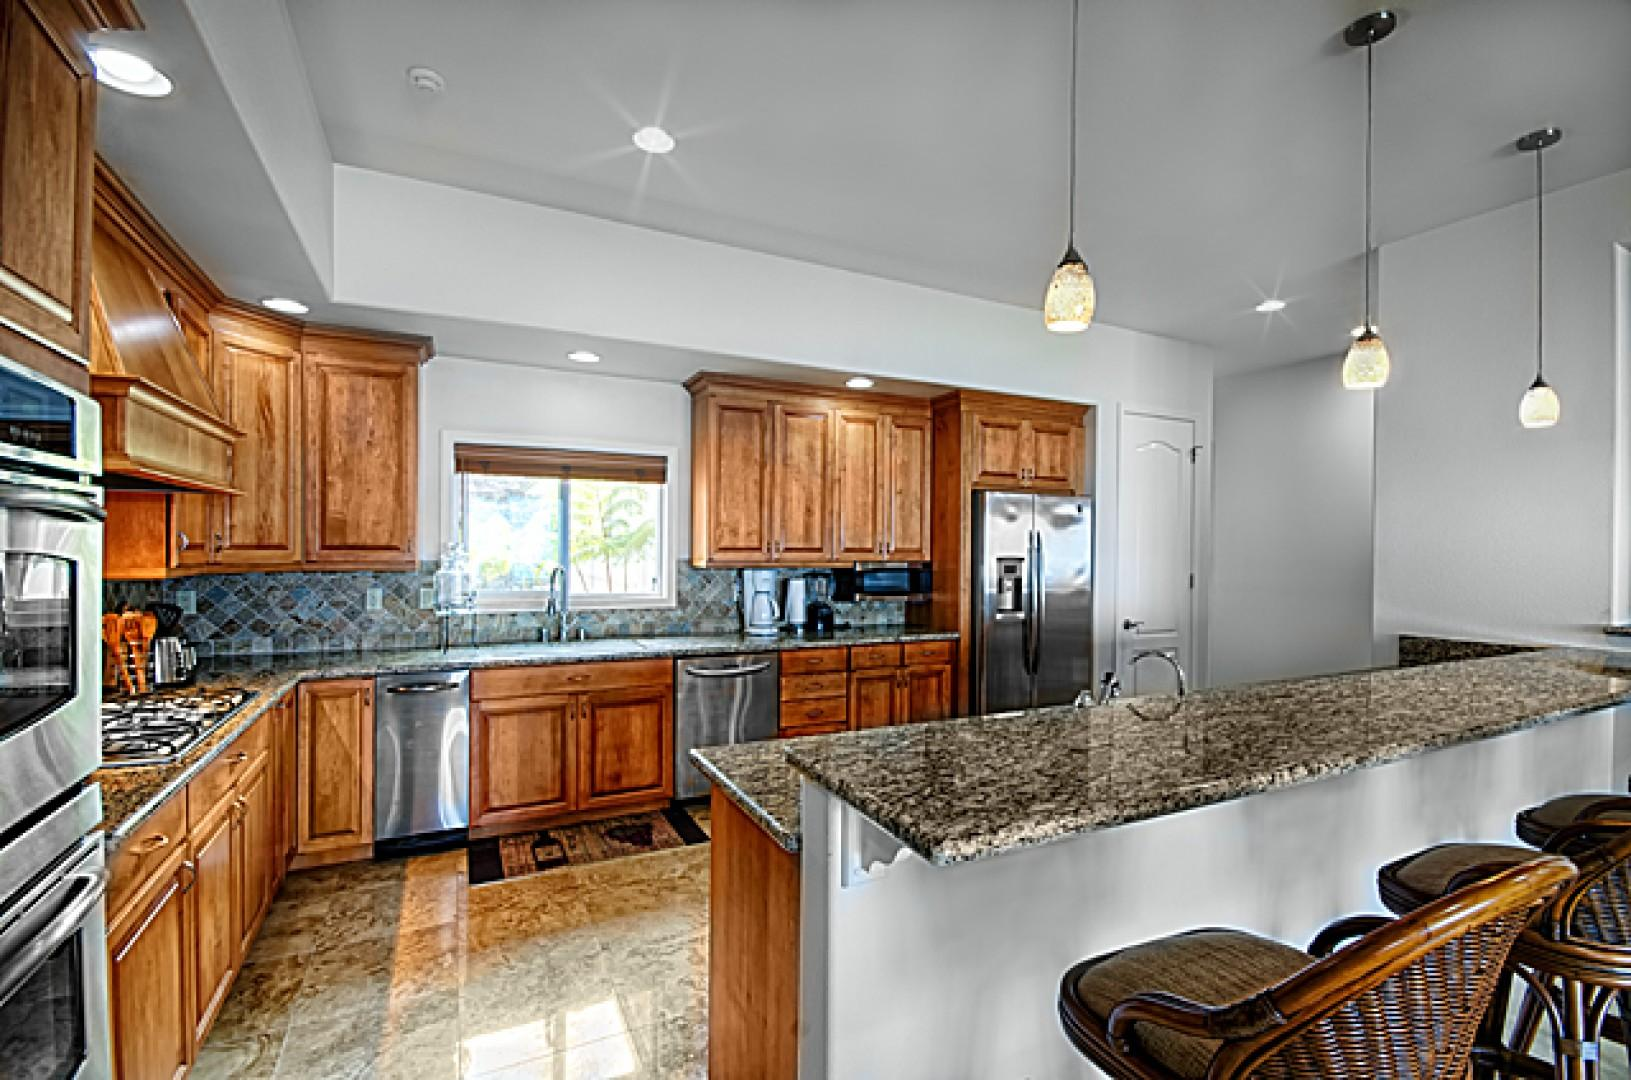 Large, open, fully equipped kitchen with bar stool seating.